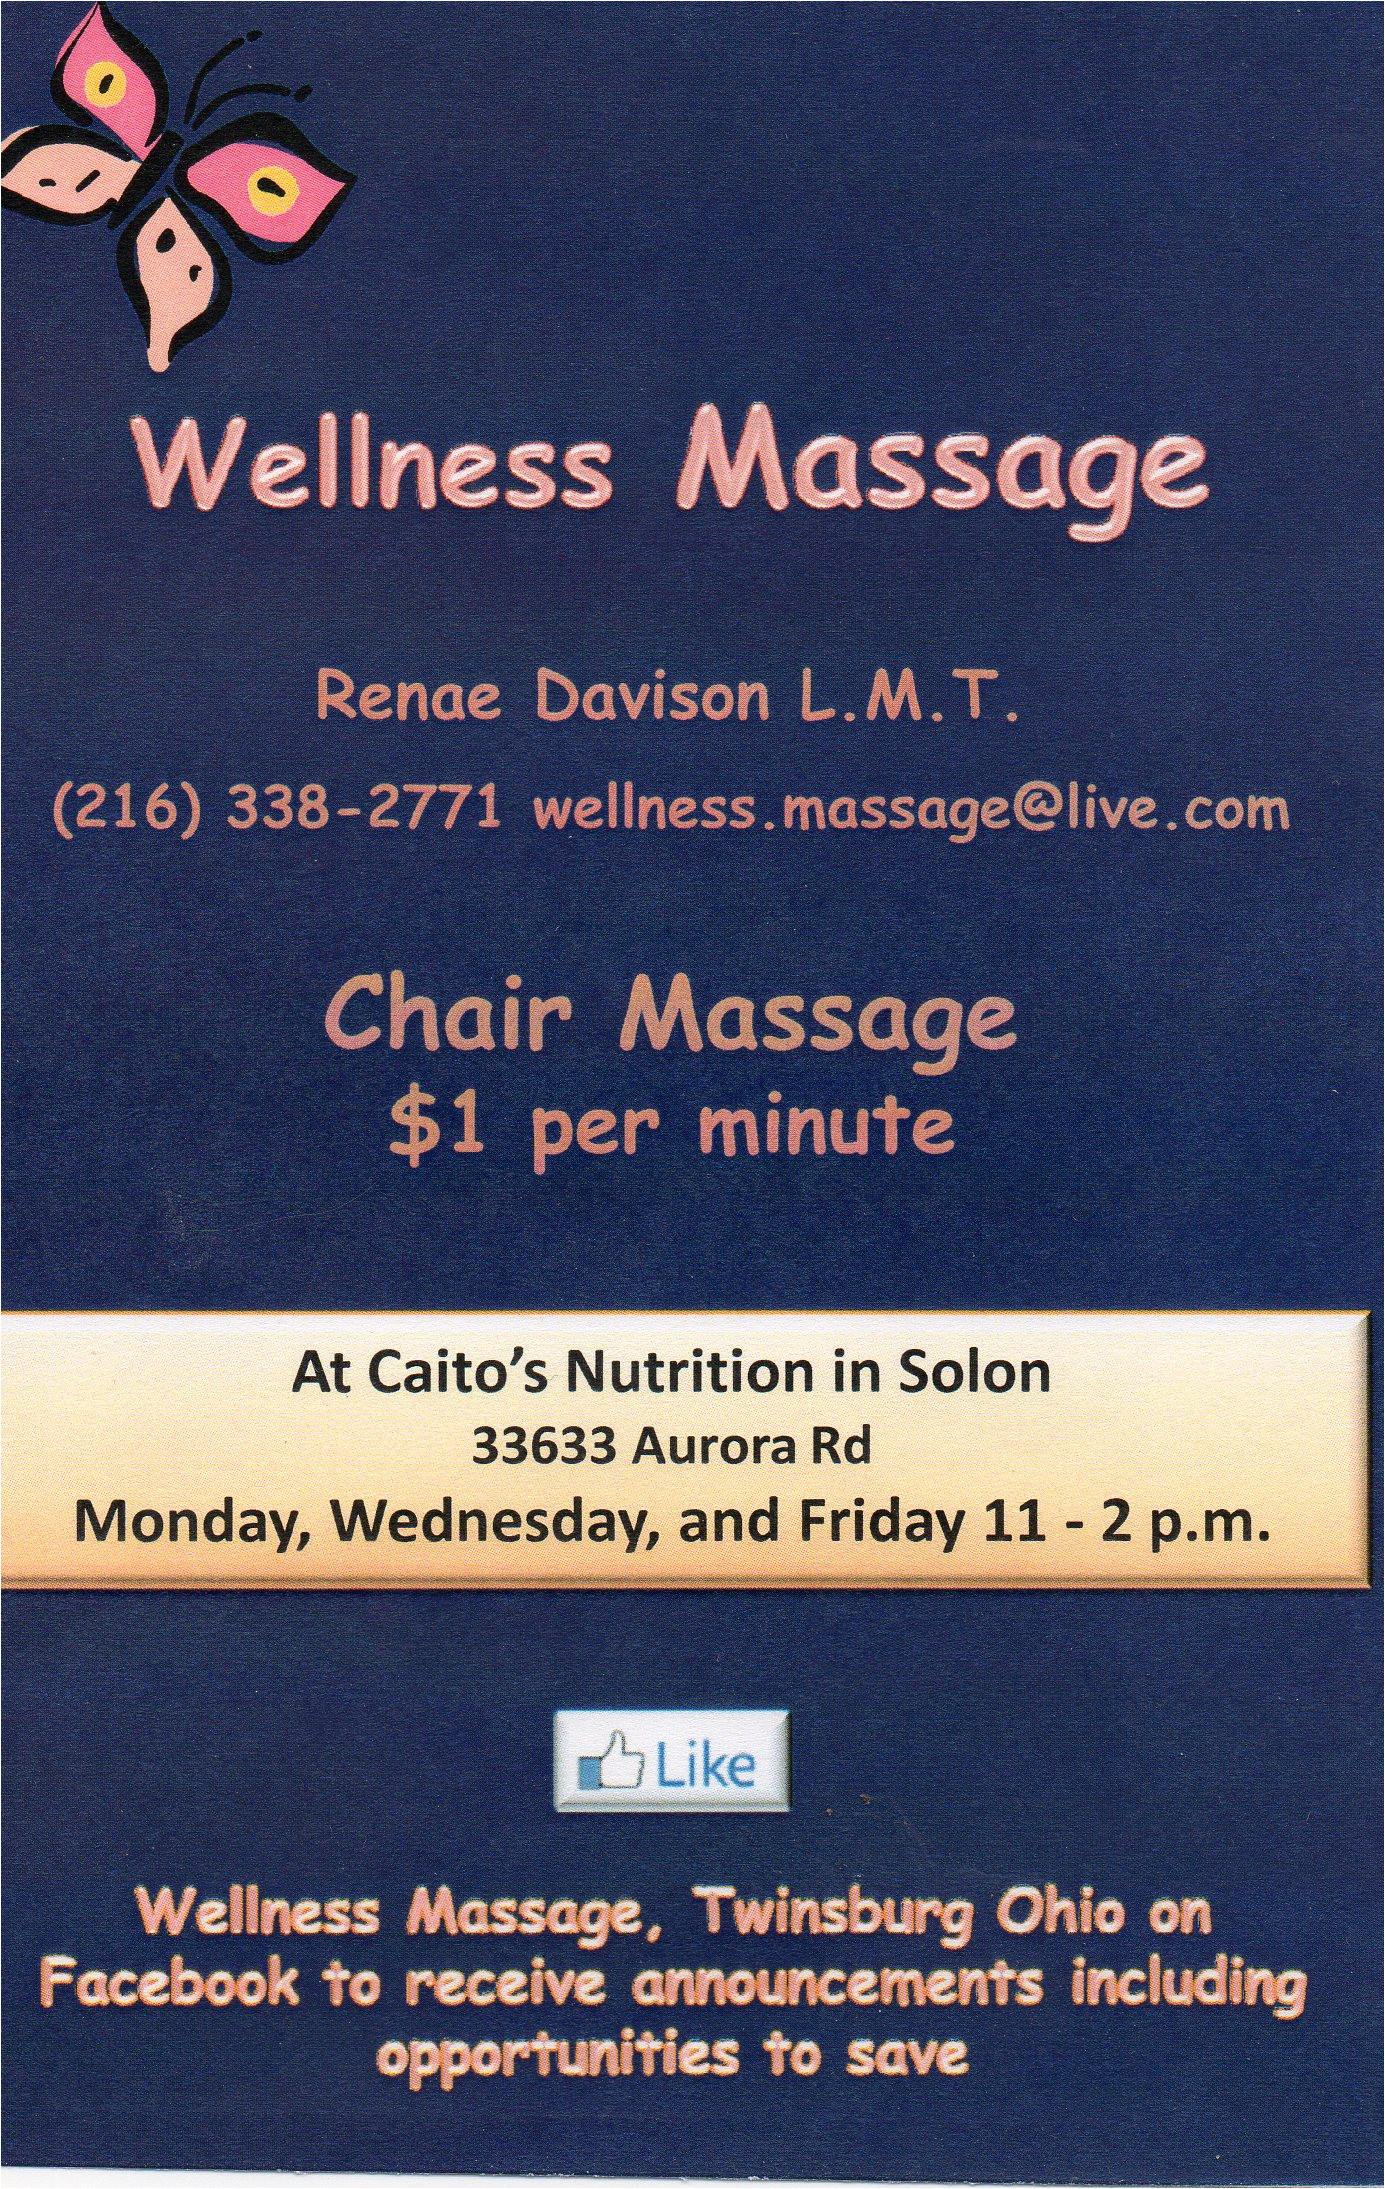 wellnessmassageohio com